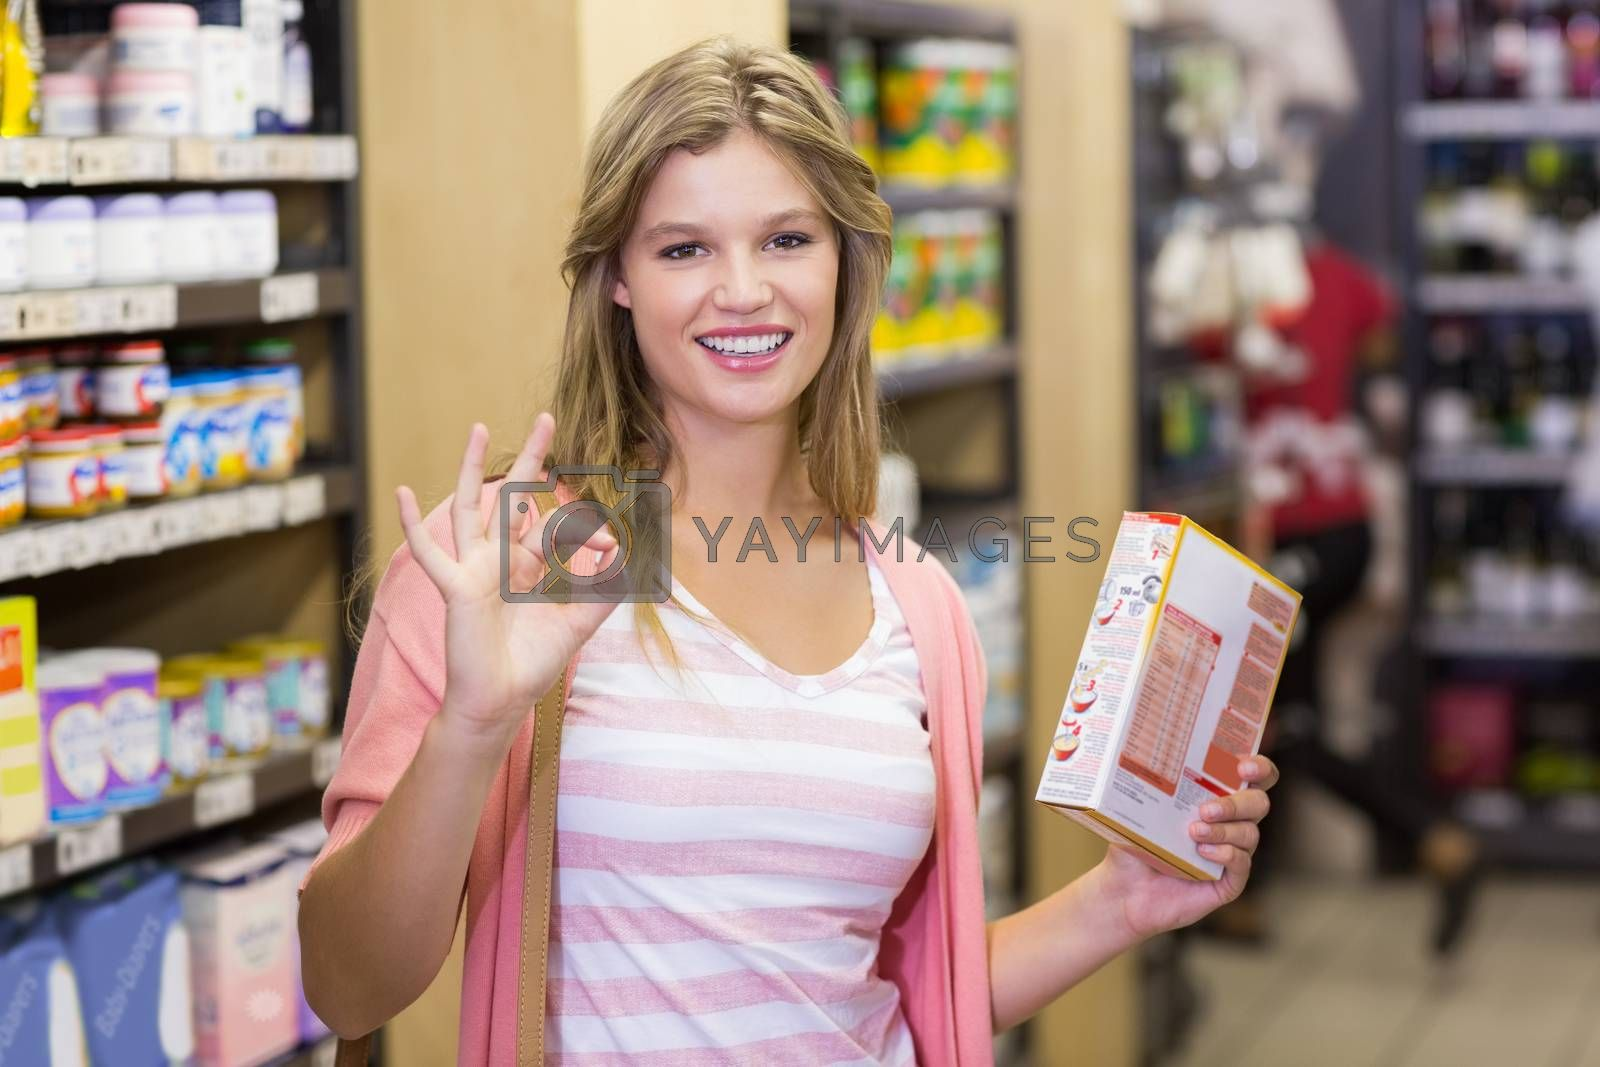 Royalty free image of Portrait of a smiling young pretty woman doing a sign of the hand  by Wavebreakmedia